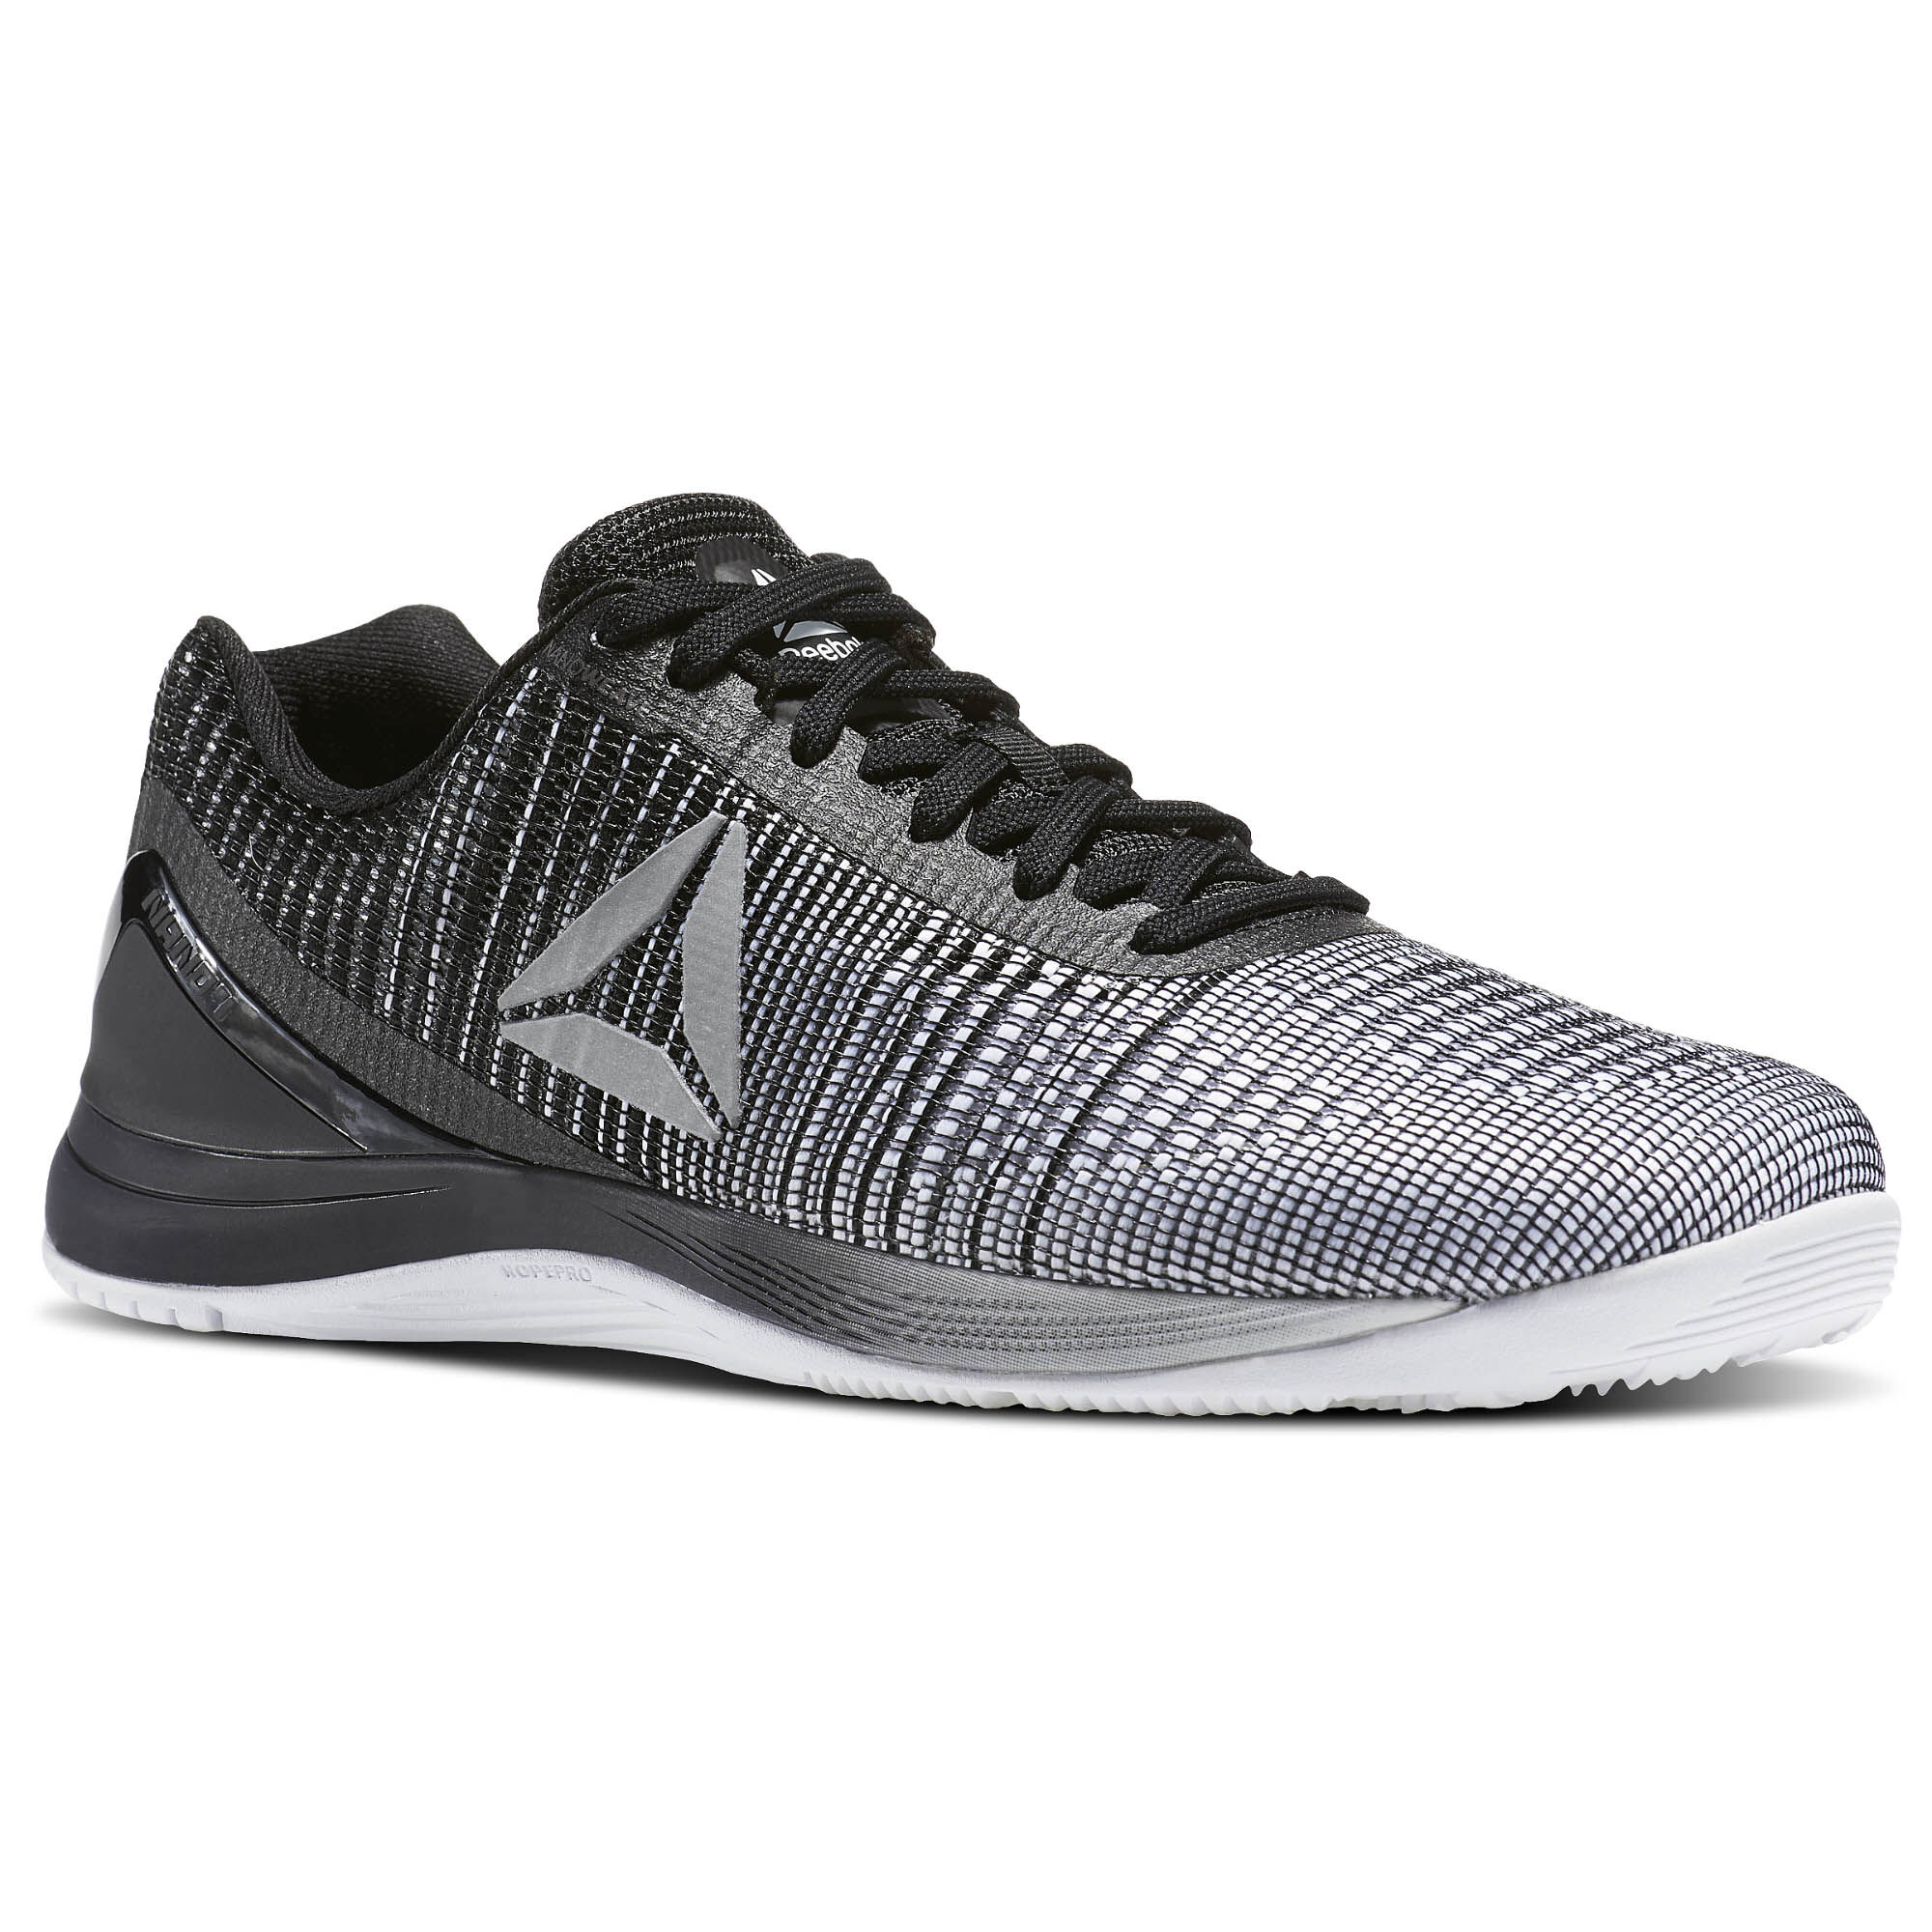 reebok crossfit shoes for men cheap   OFF53% The Largest Catalog ... 51ac484be